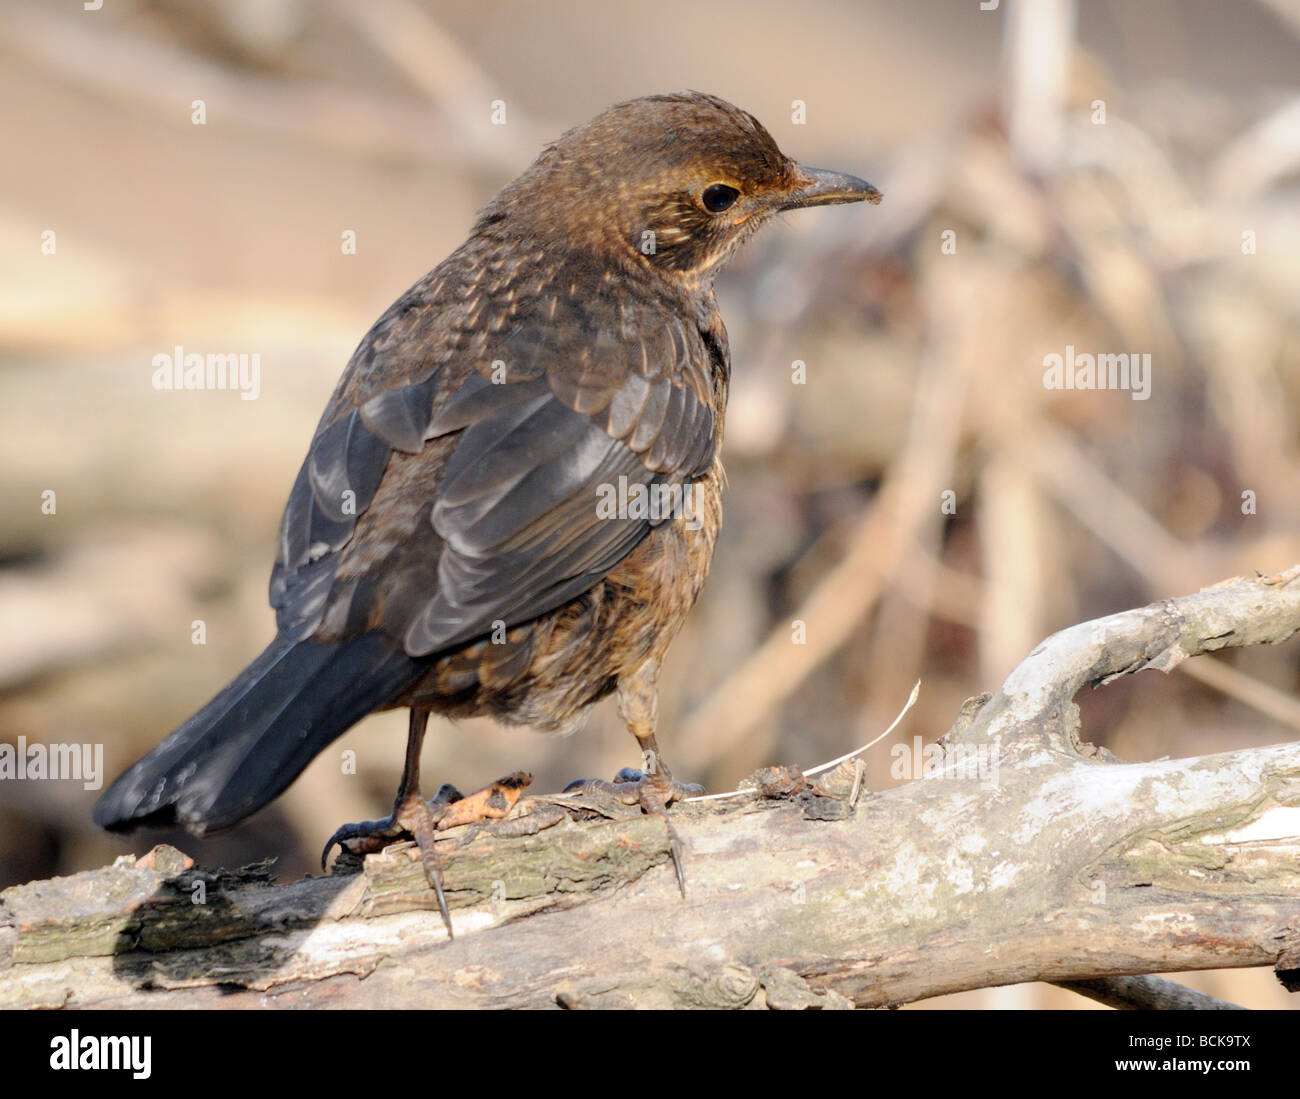 A young blackbird  (Turdus merula) searching for food among driftwood on the banks of the River Aln. Stock Photo